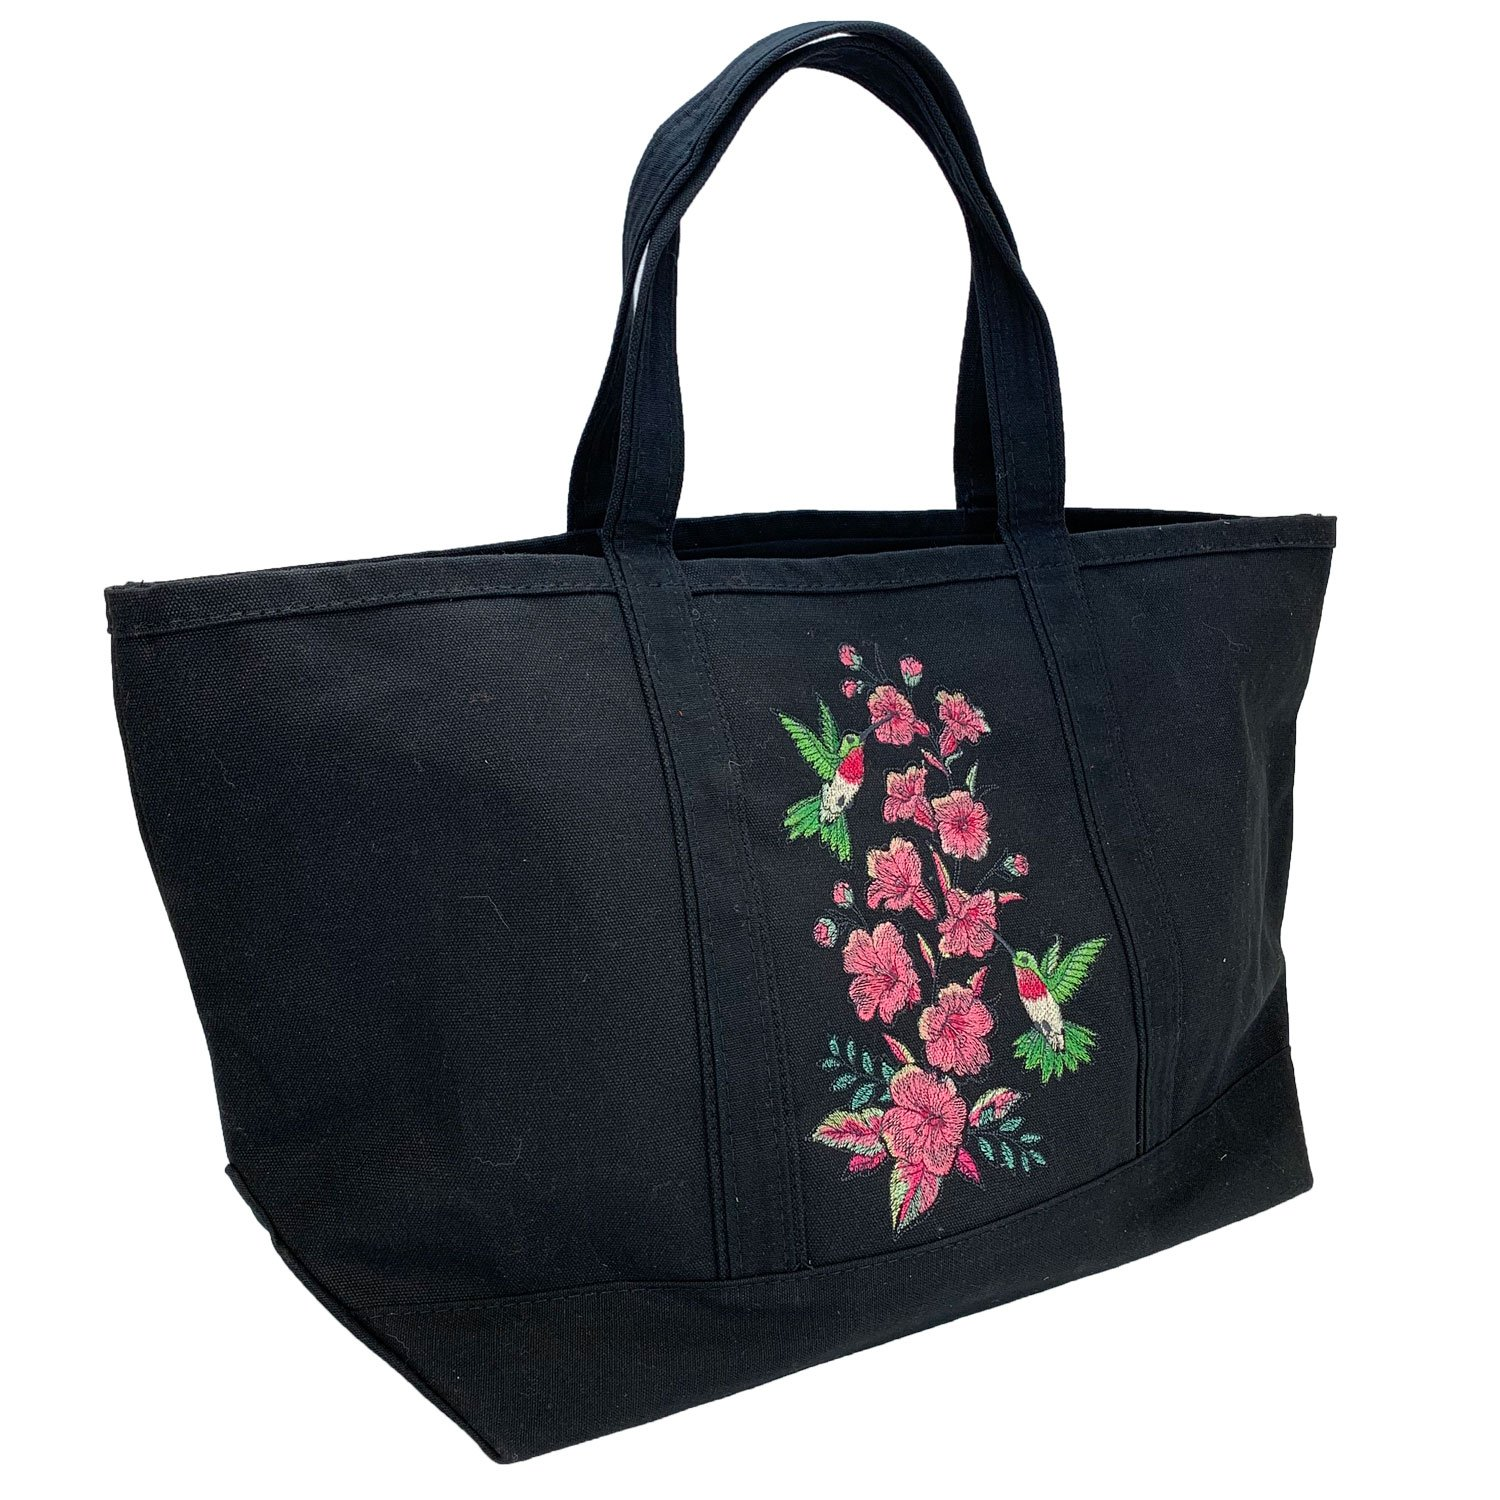 Embroidered Canvas Tote Large Black Hummingbirds